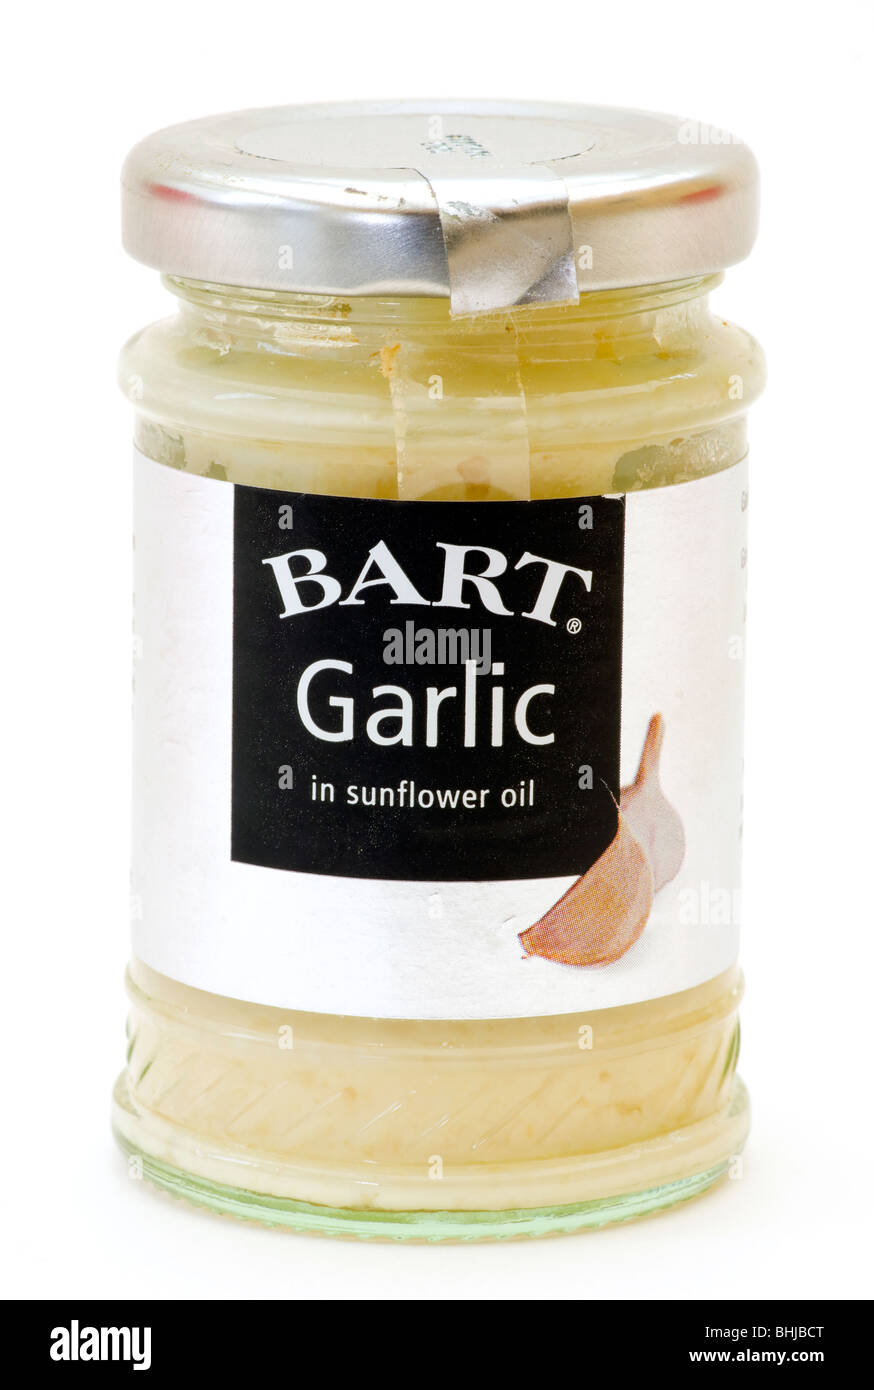 A Glass Jar Of Bart Garlic In Sunflower Oil Isolated Against A White Background - Stock Image